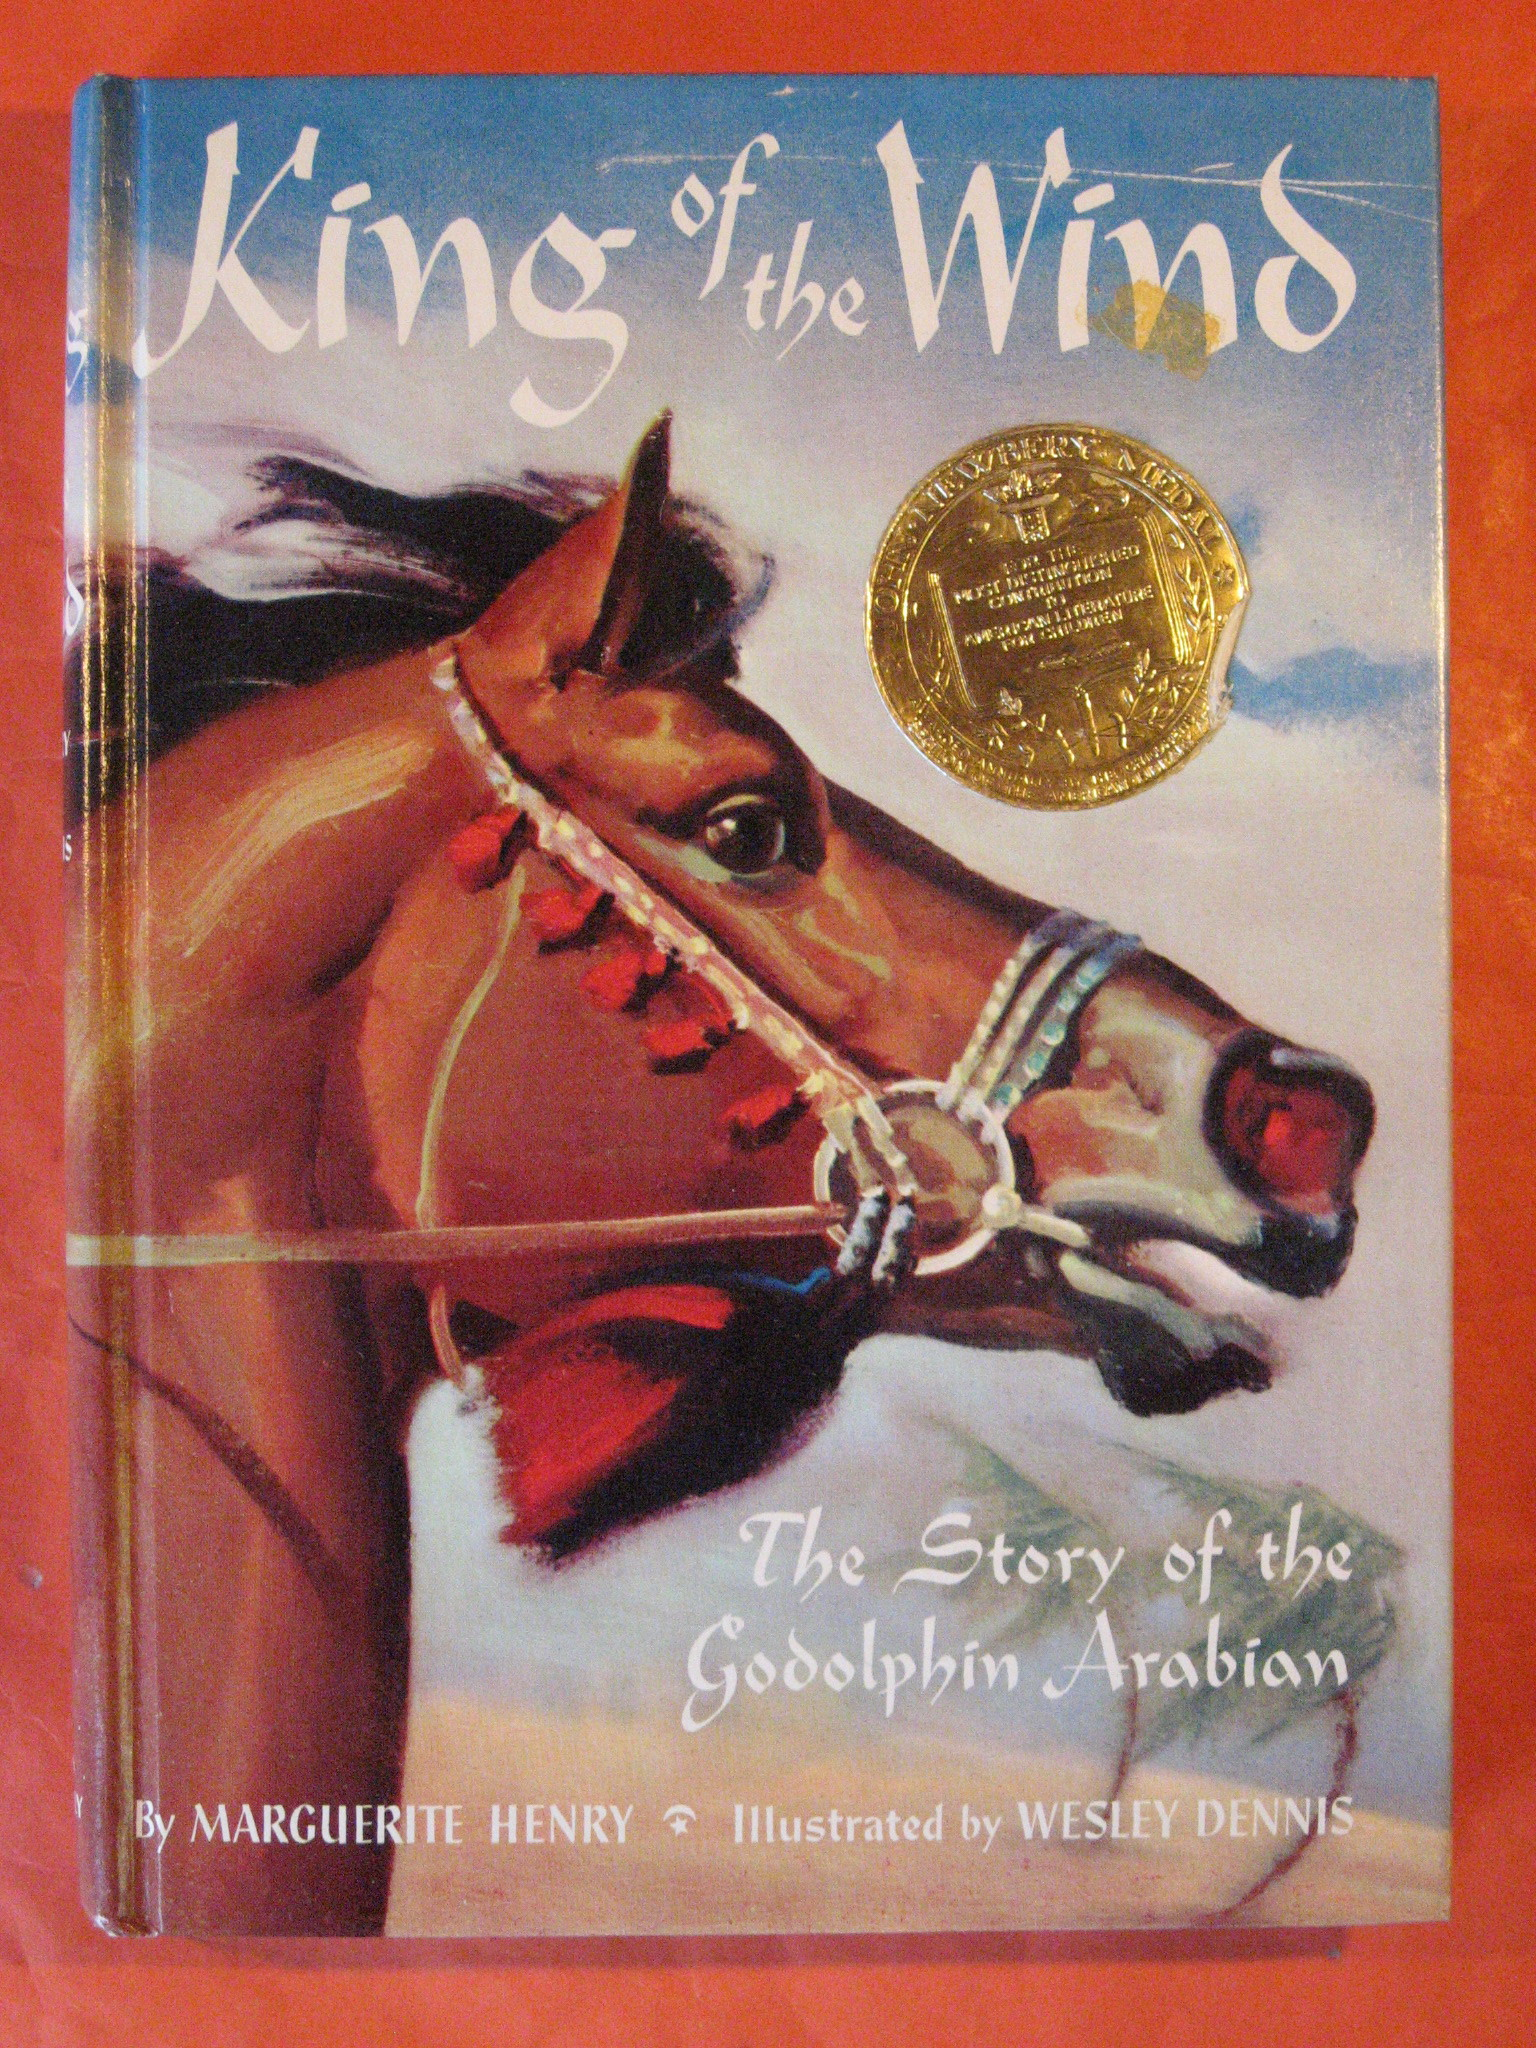 King of the Wind:  The Story of the Godolphin Arabian, Henry, Marguerite